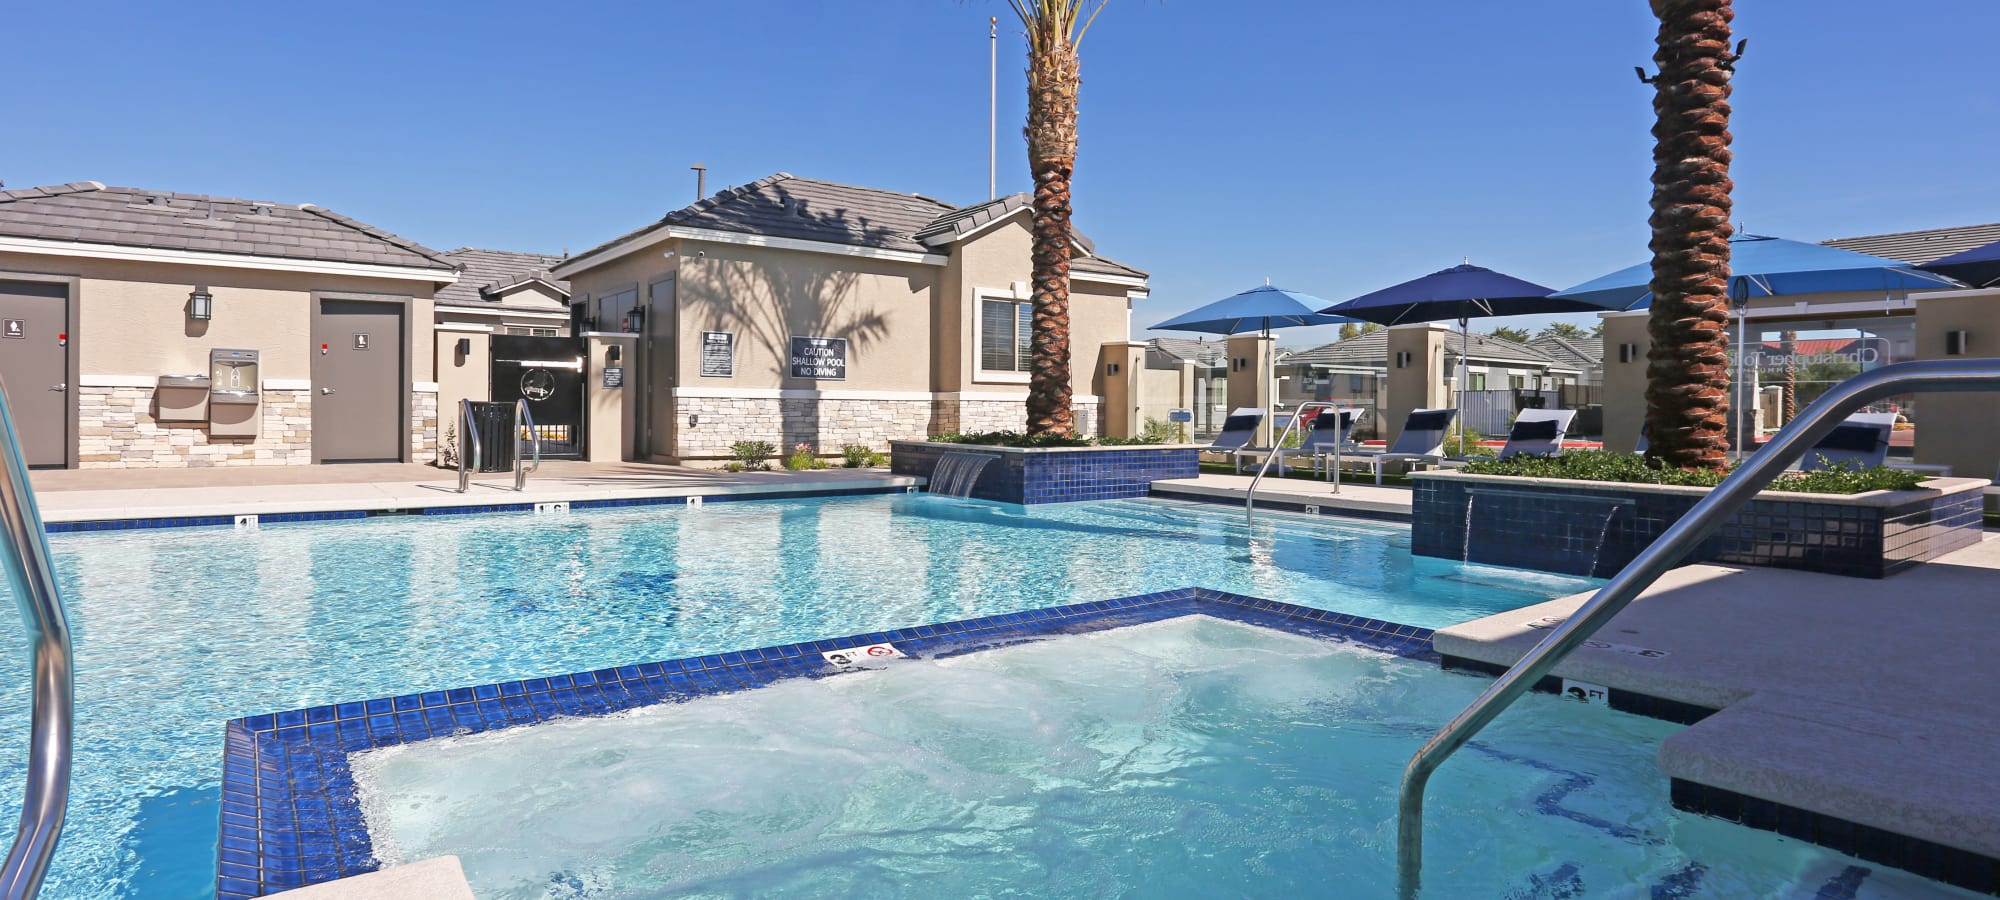 Pool and adjacent spa at Christopher Todd Communities At Marley Park in Surprise, Arizona